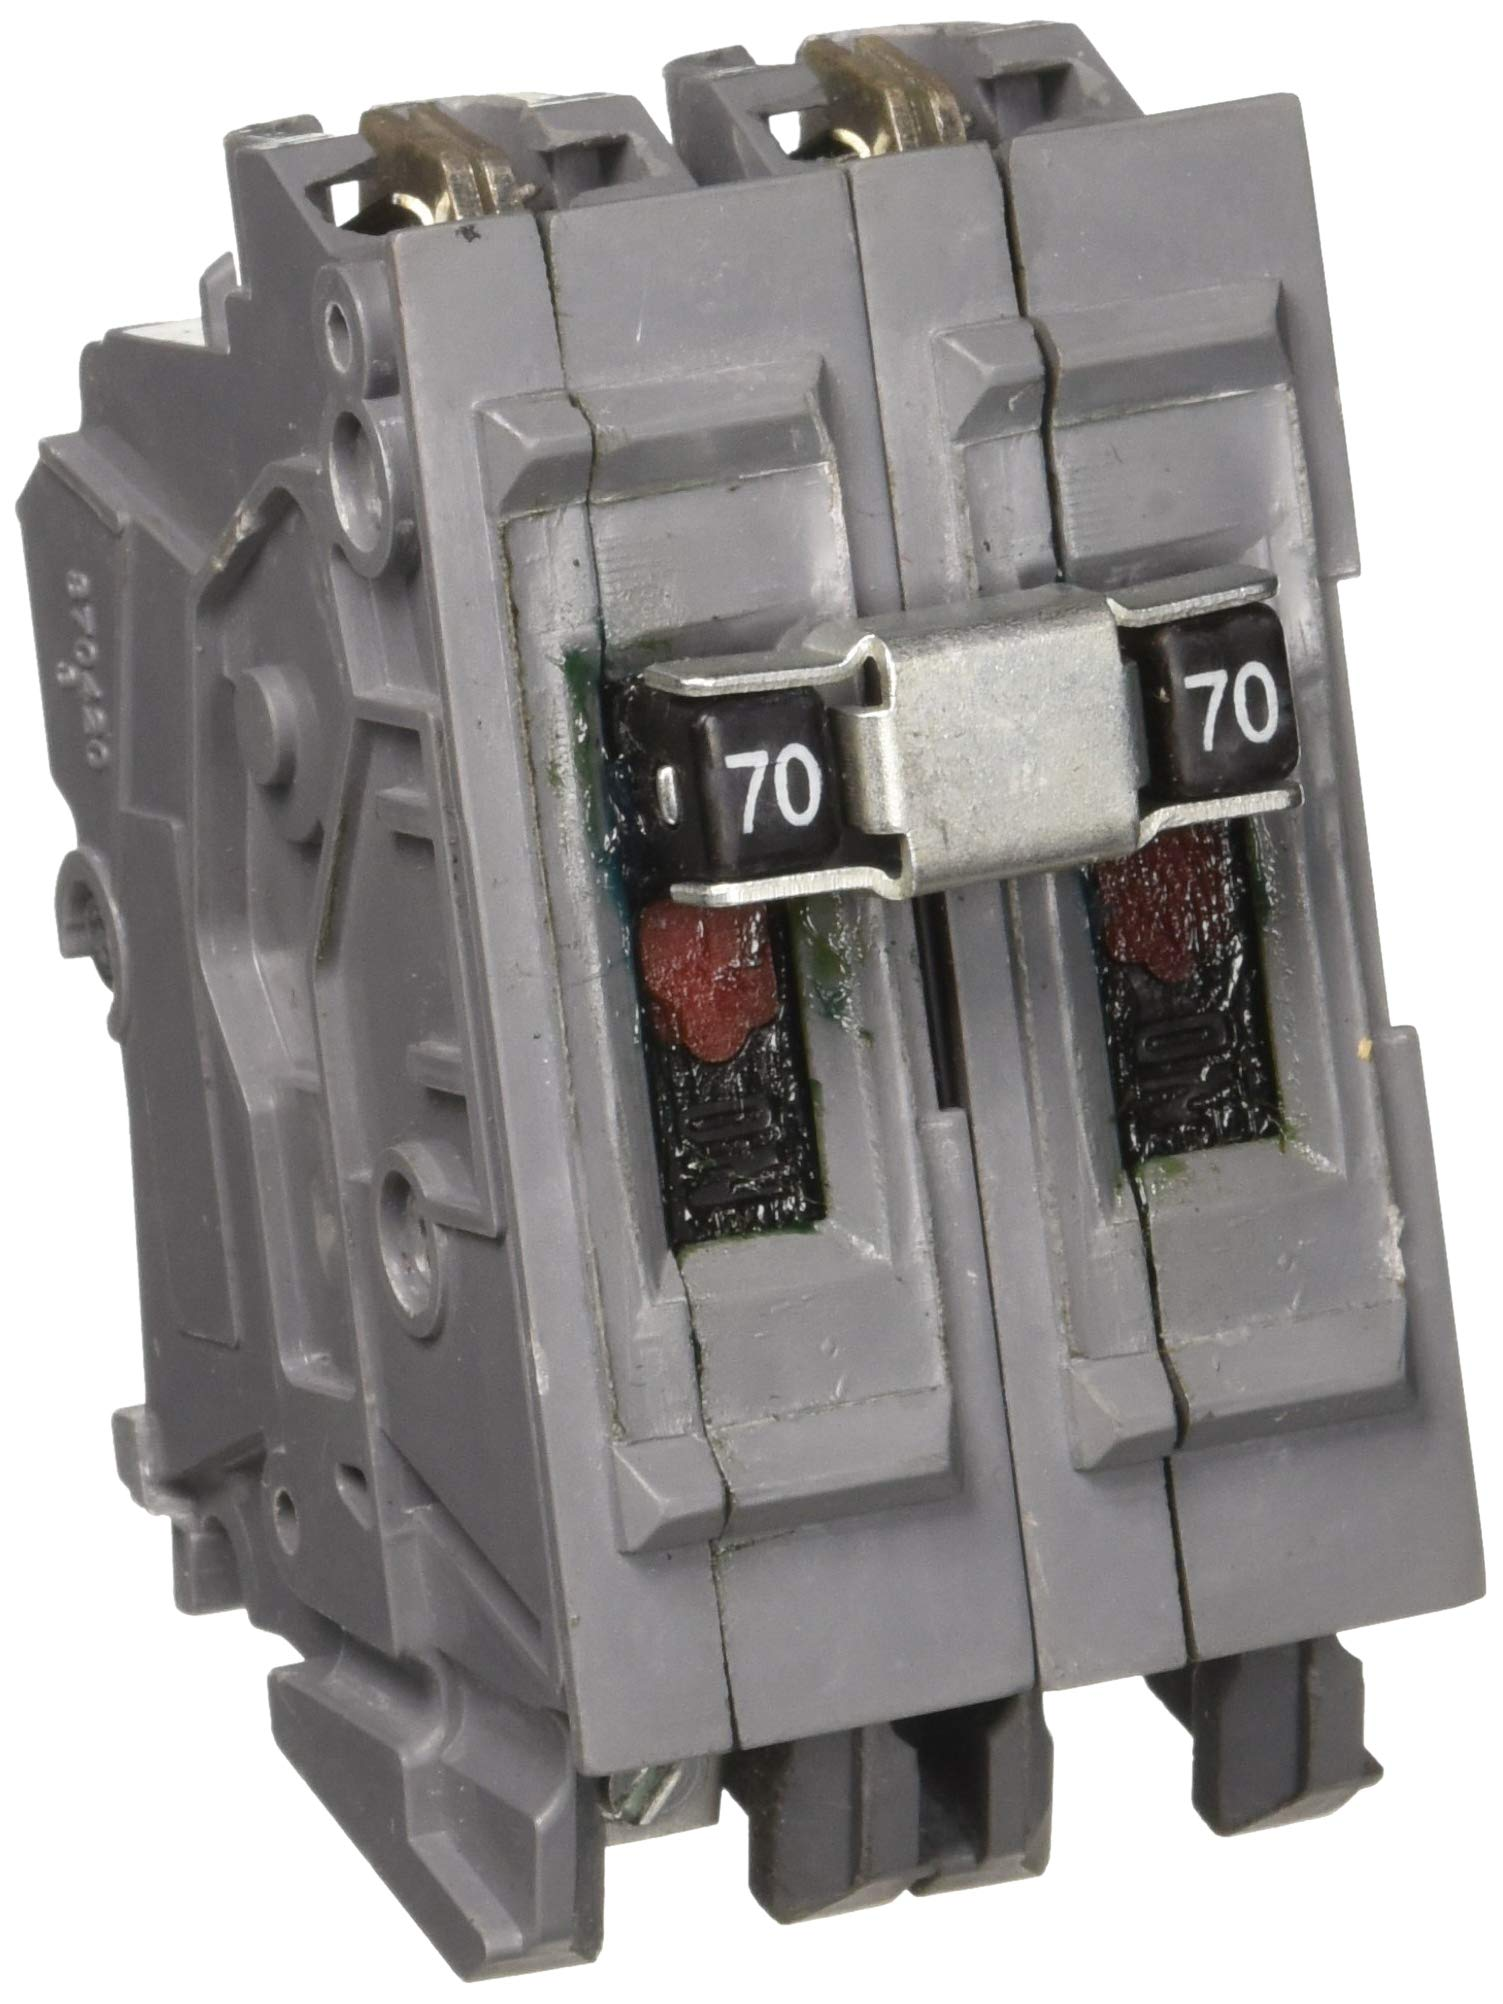 UBIA270NI-New Wadsworth Type A Replacement. Two Pole 70 Amp Circuit Breaker Manufactured by Connecticut Electric. by Wadsworth